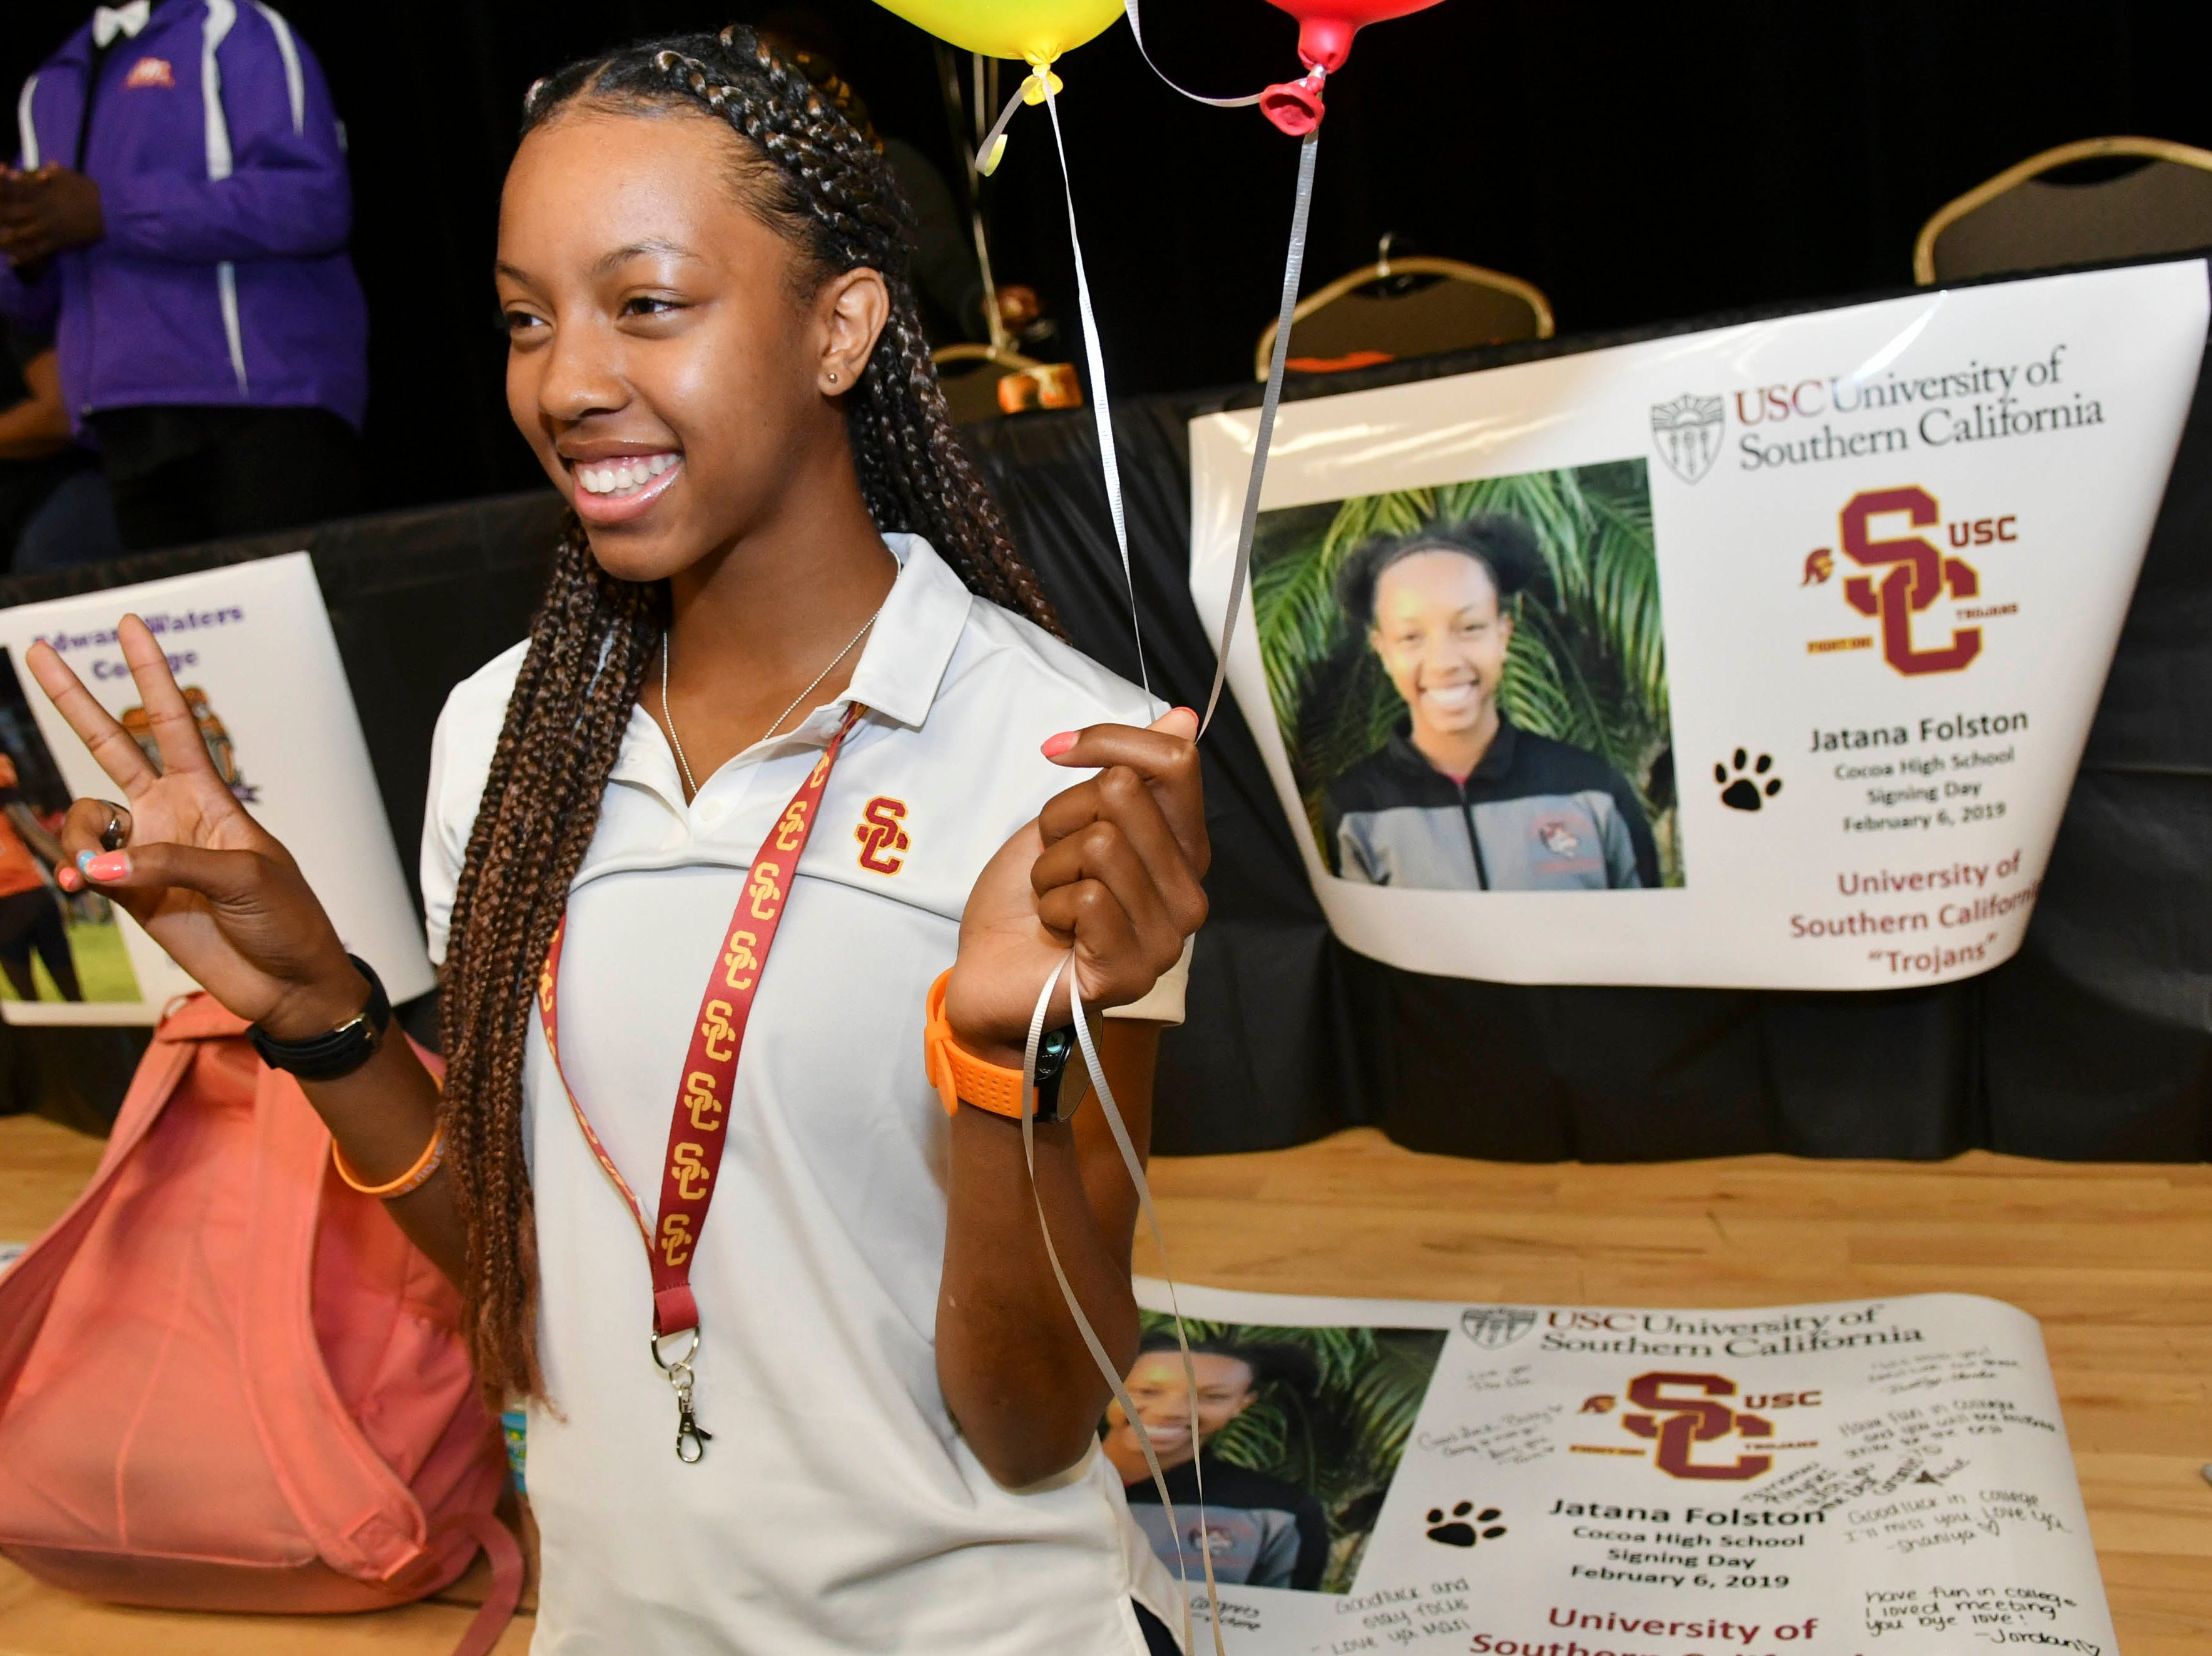 Jatana Folston of Cocoa High poses for pictures after signing a letter of intent to the University of Southern California during National Signing Day at Cocoa High School